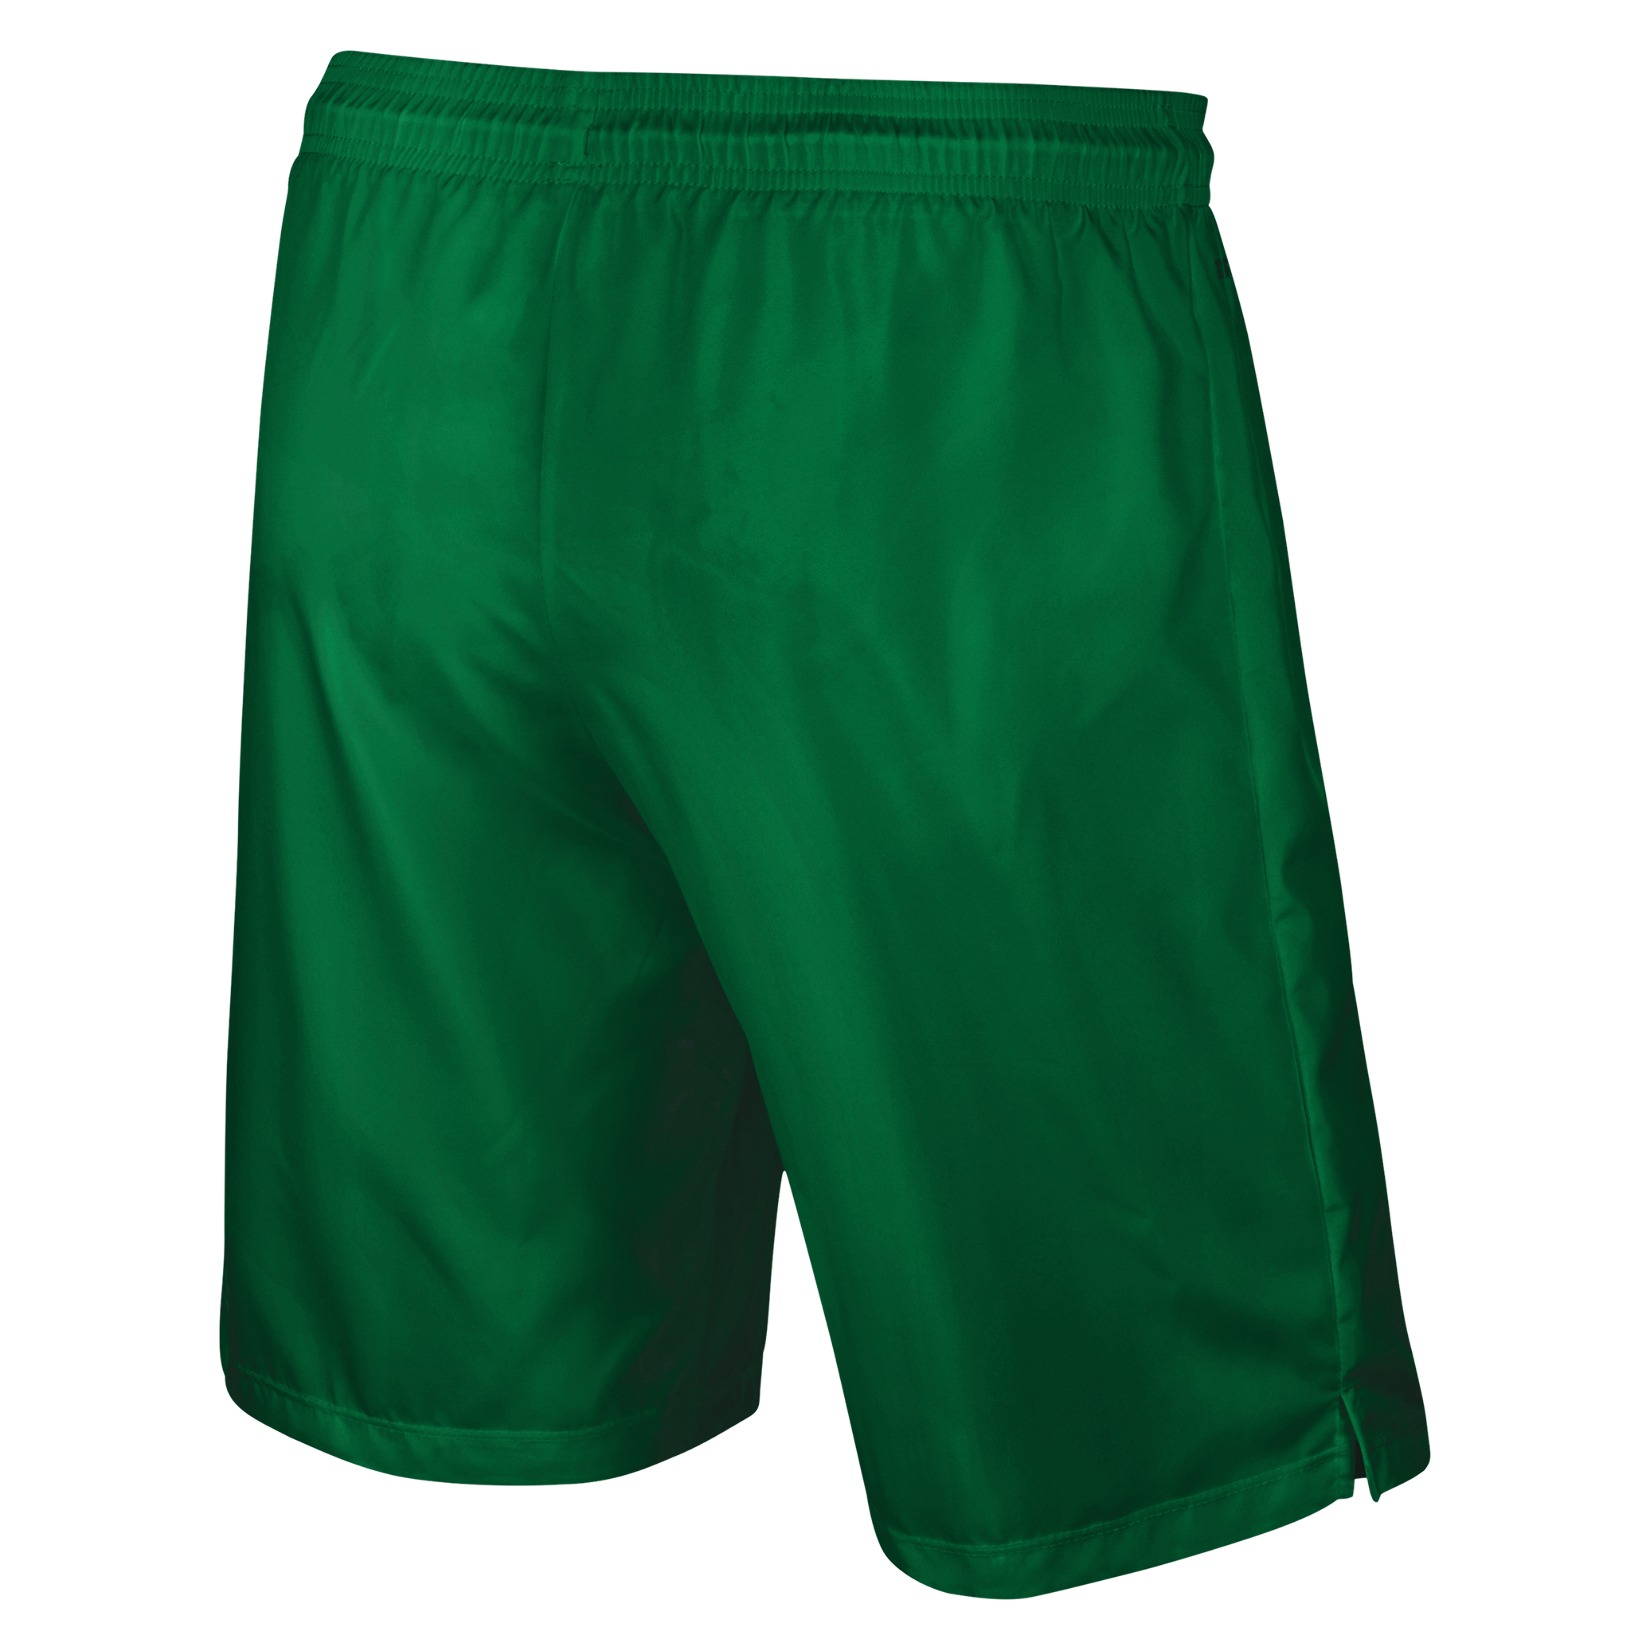 Nike Laser III Woven Short Pine Green-White